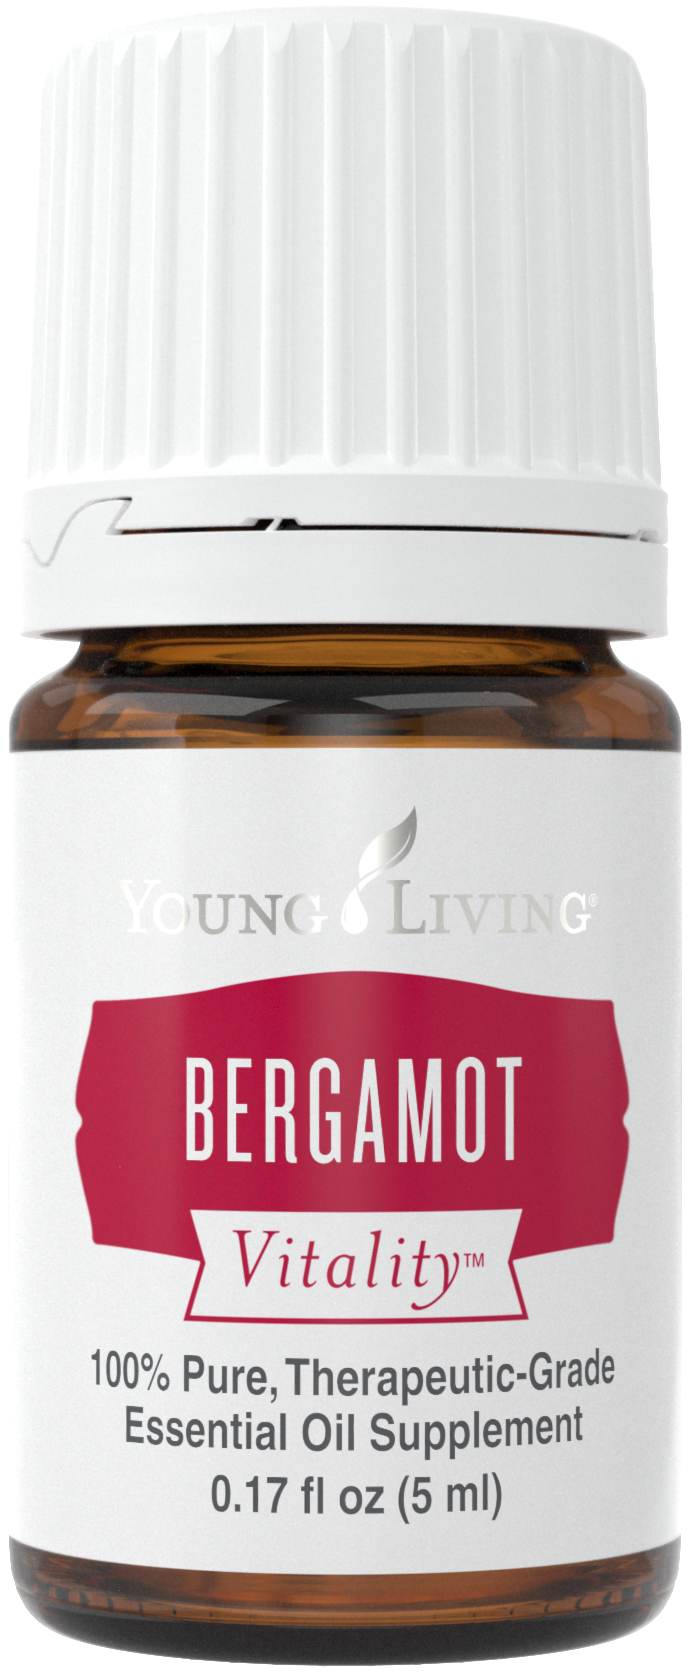 bergamot_5ml_suplement_silo_2016_24319980901_o